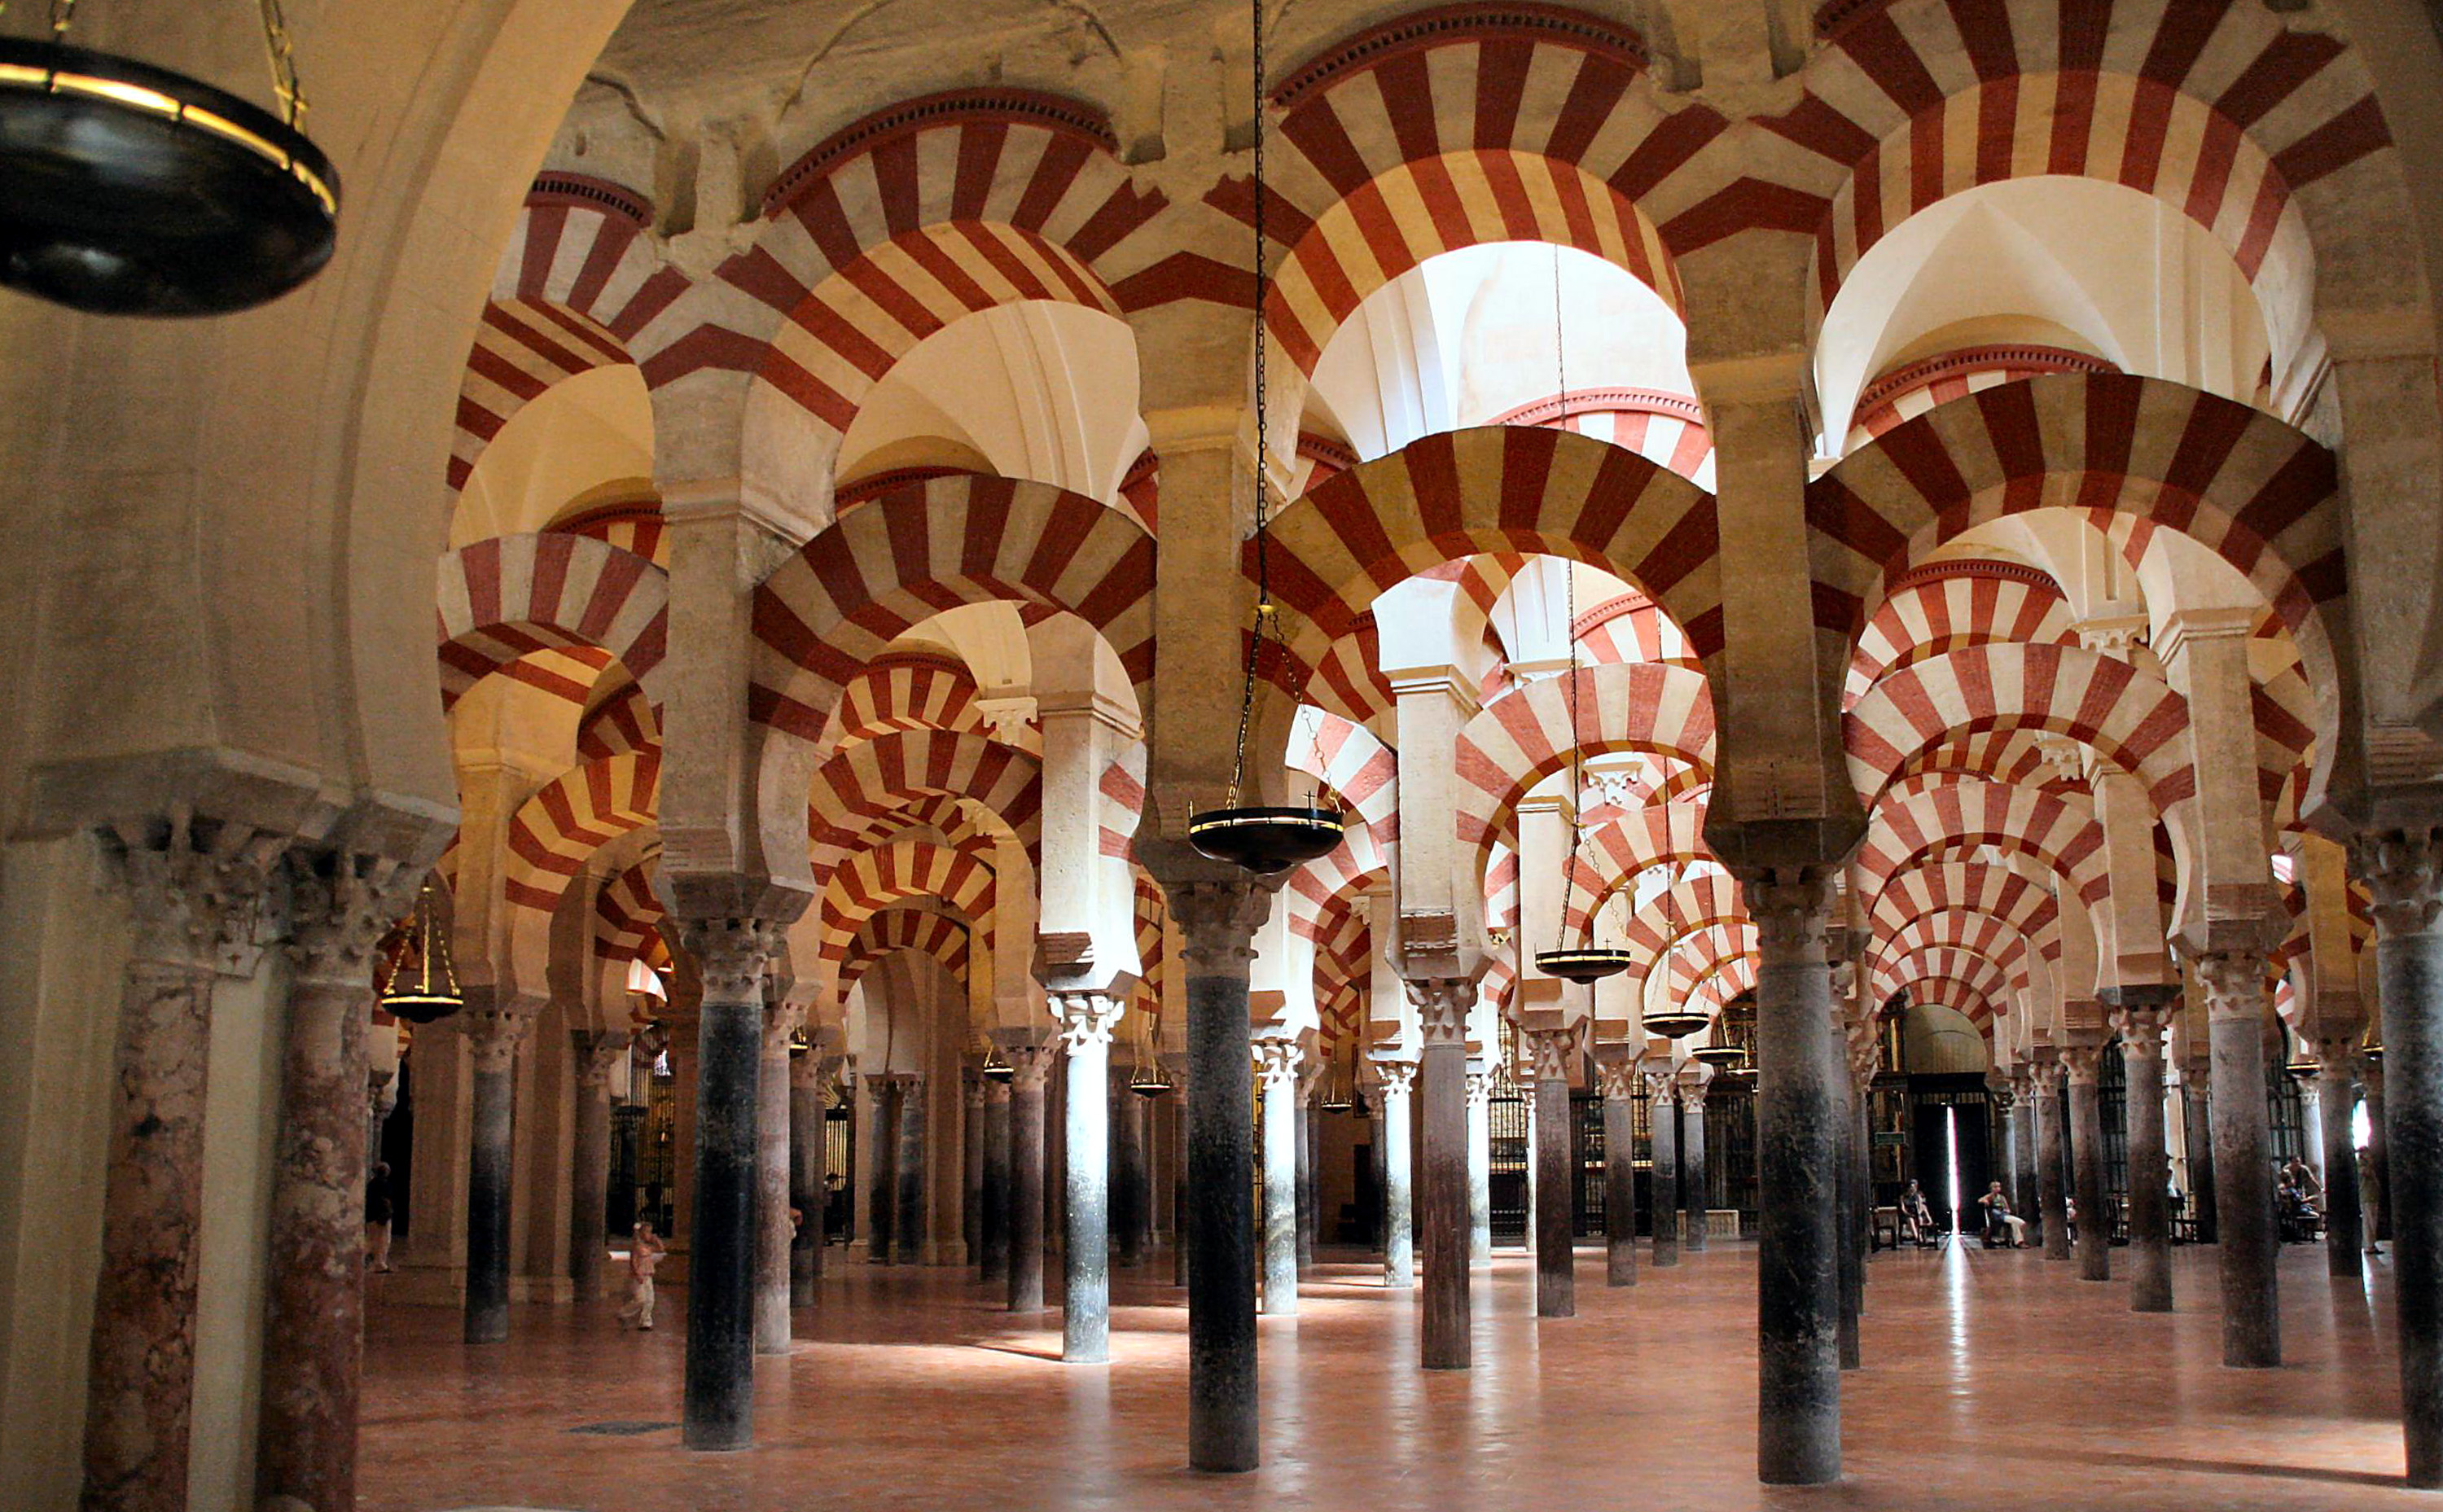 Interior de la mezquita cordobesa. Autor, James Gordon